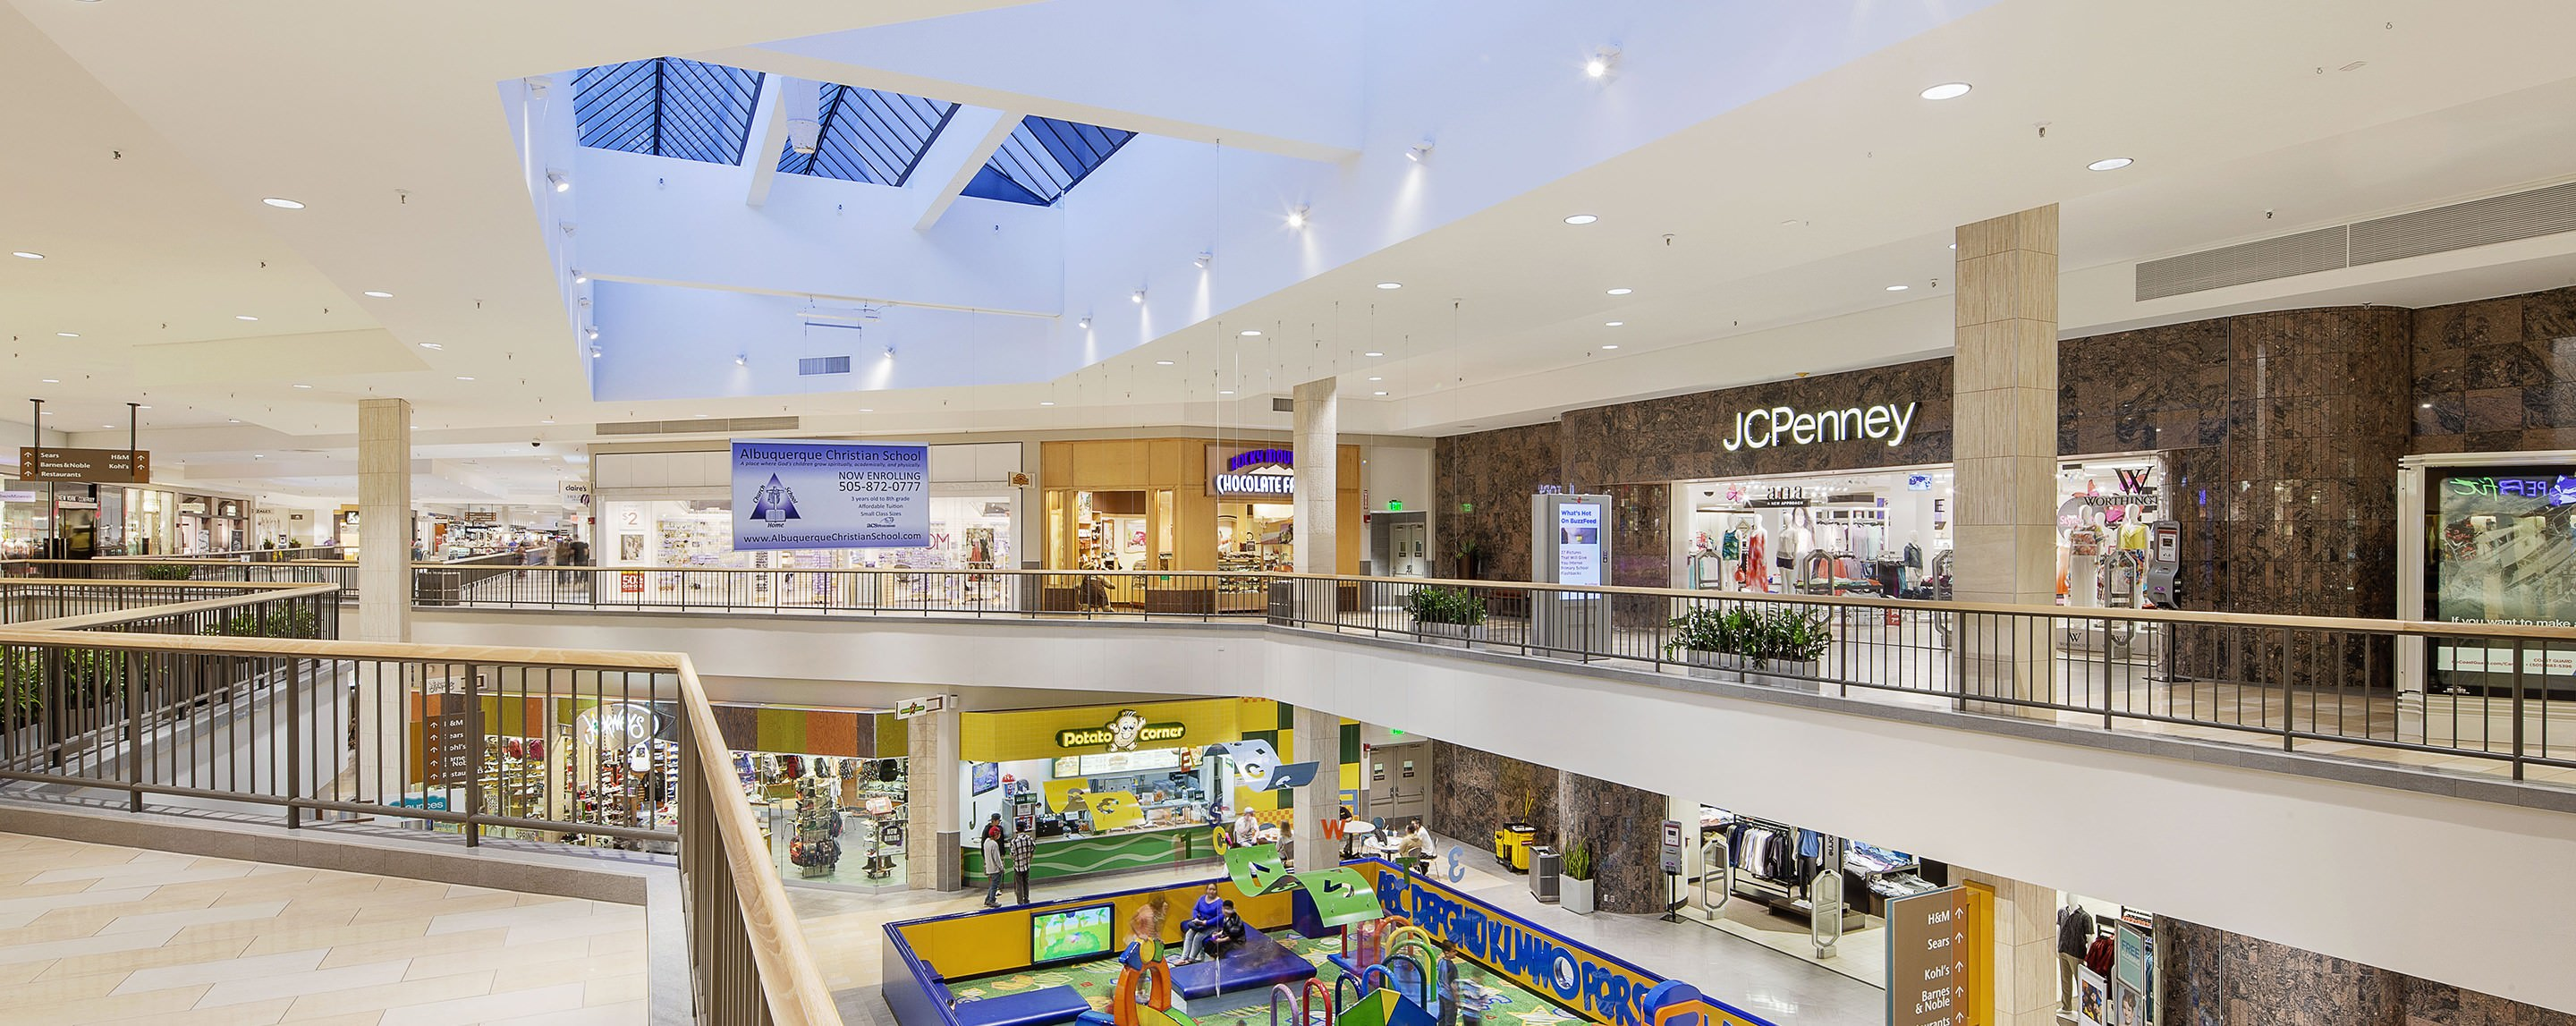 In an open area in the Coronado Center atrium, visitors can see two levels of store fronts